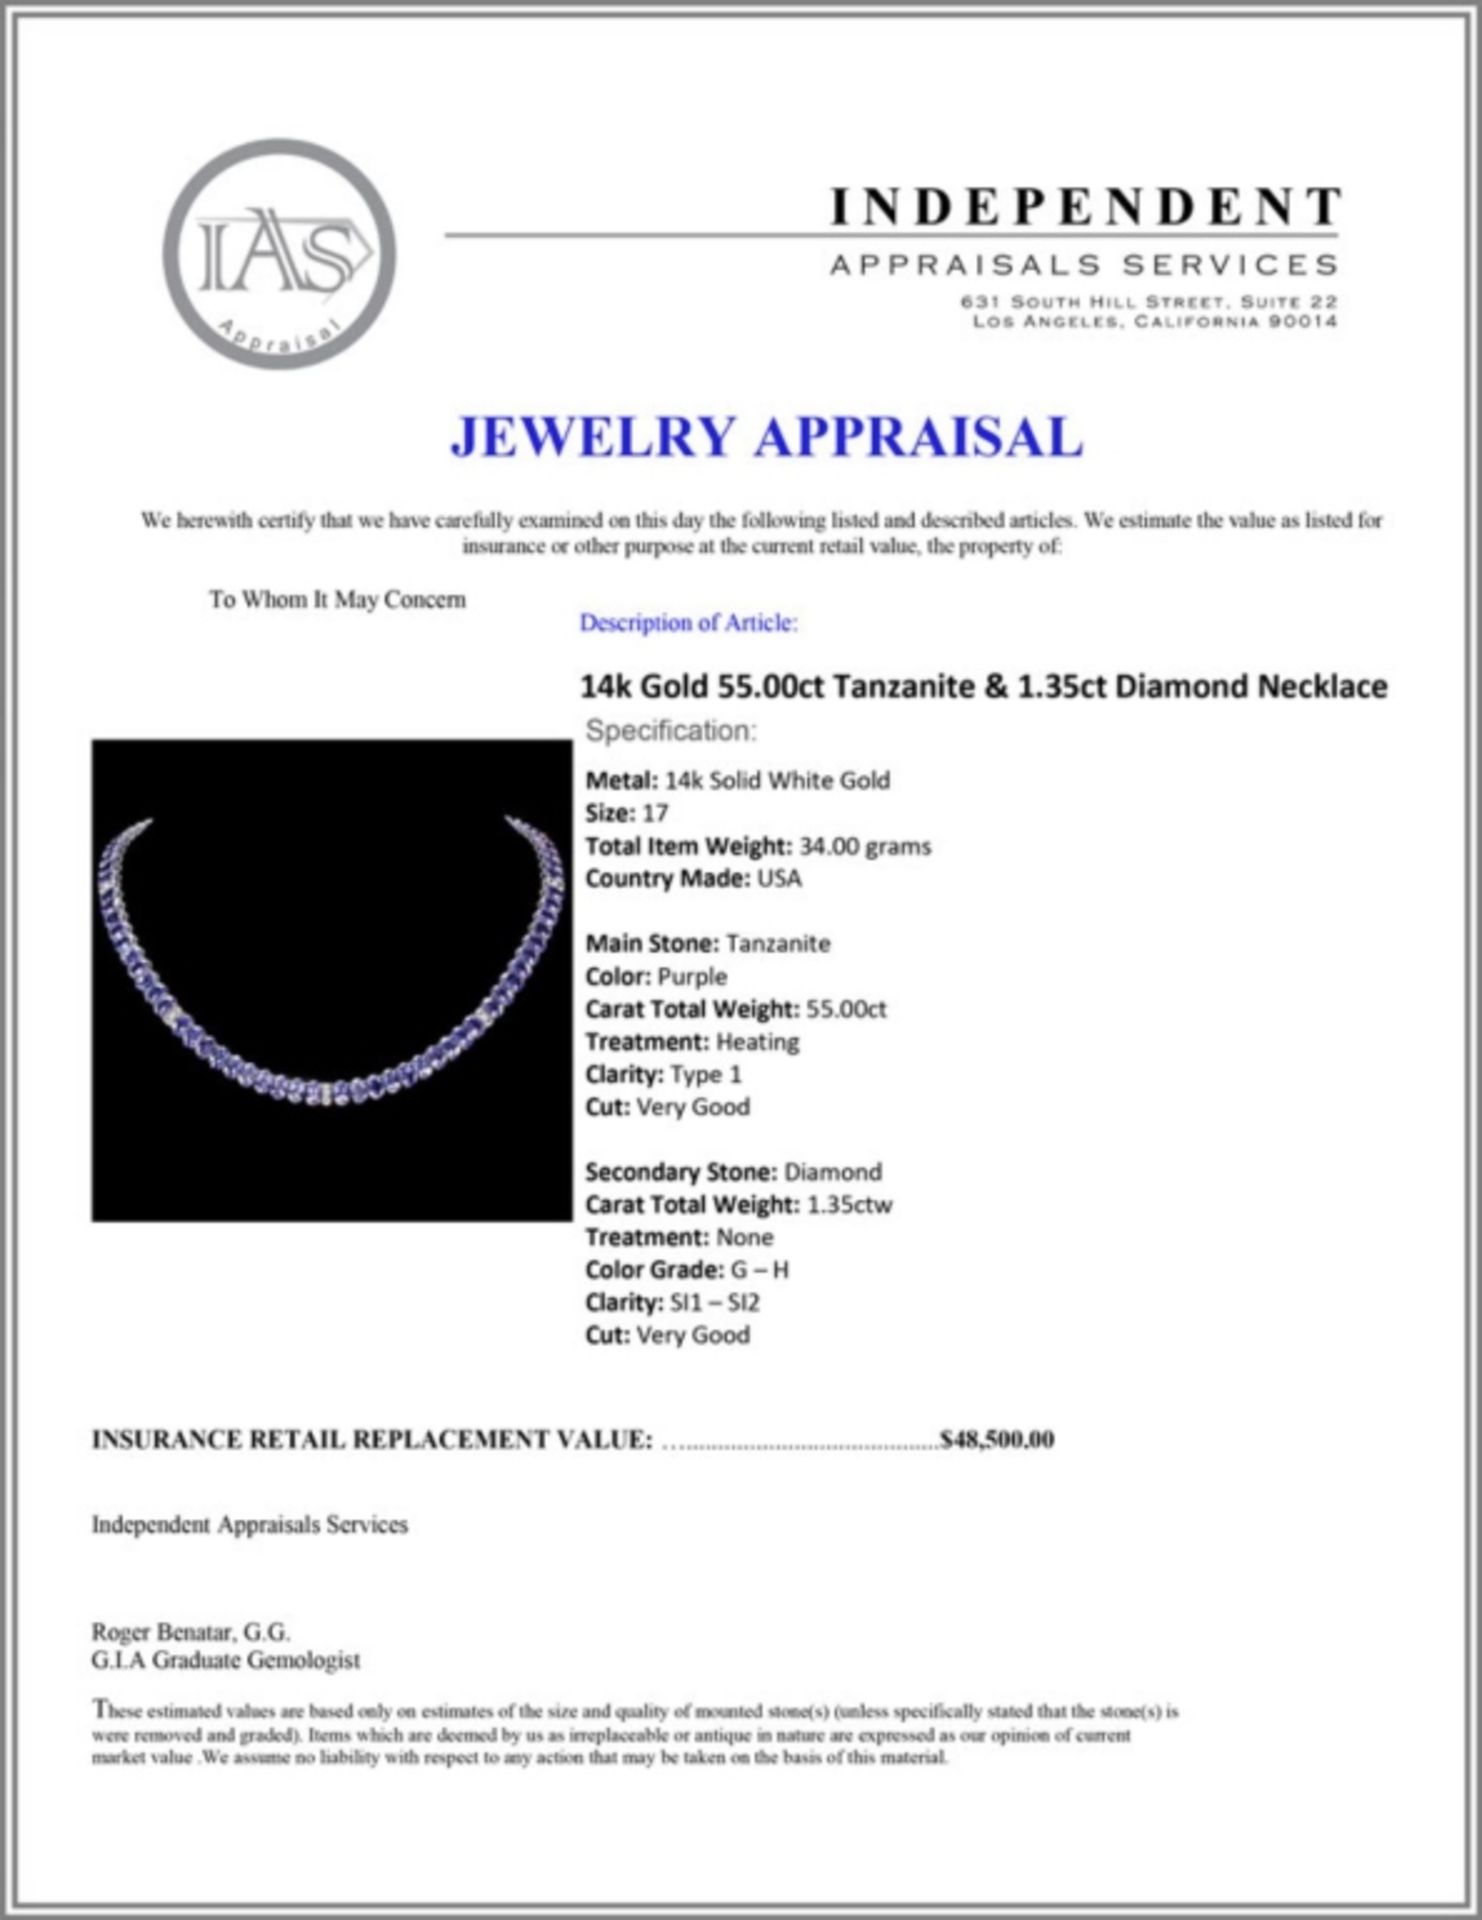 `14k Gold 55.00ct Tanzanite & 1.35ct Diamond Neckl - Image 5 of 5